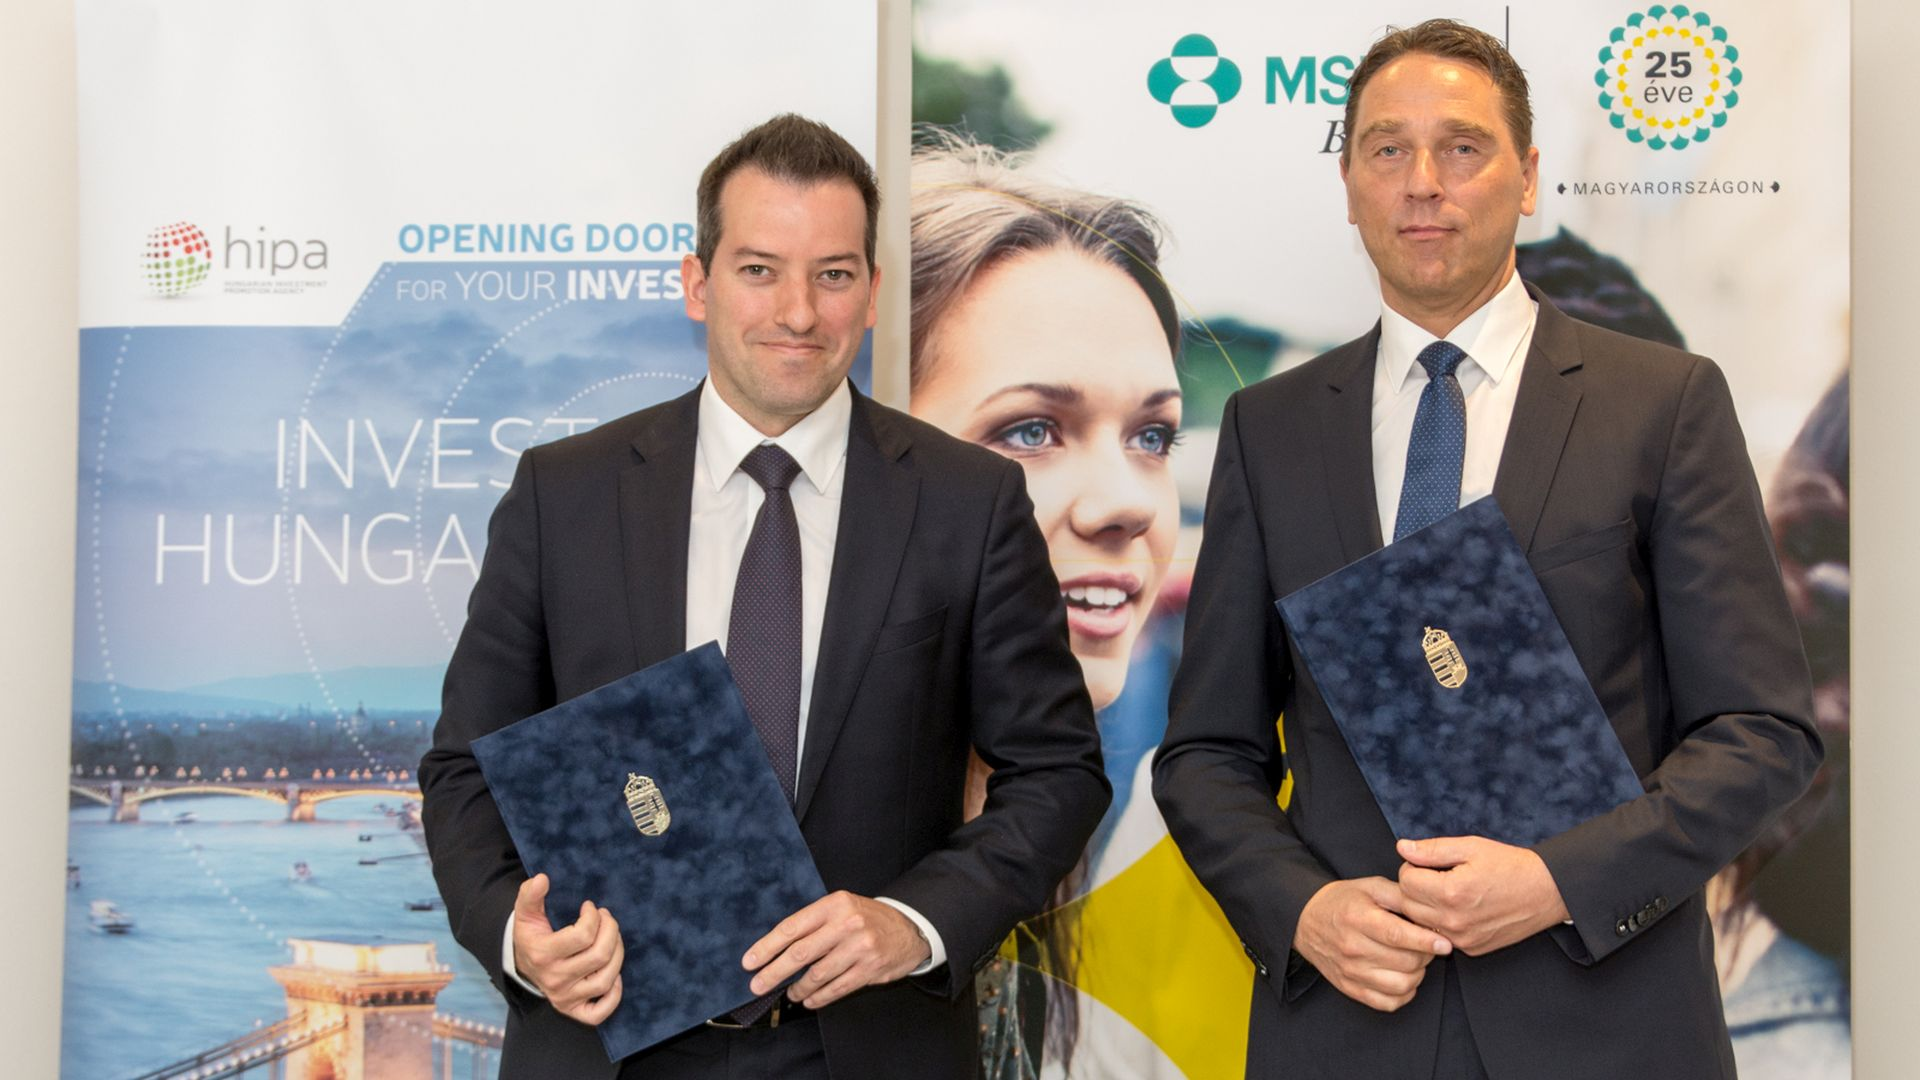 20170411-hipa-msd-pharma-mou-esik-robert-thomas-straumits-2